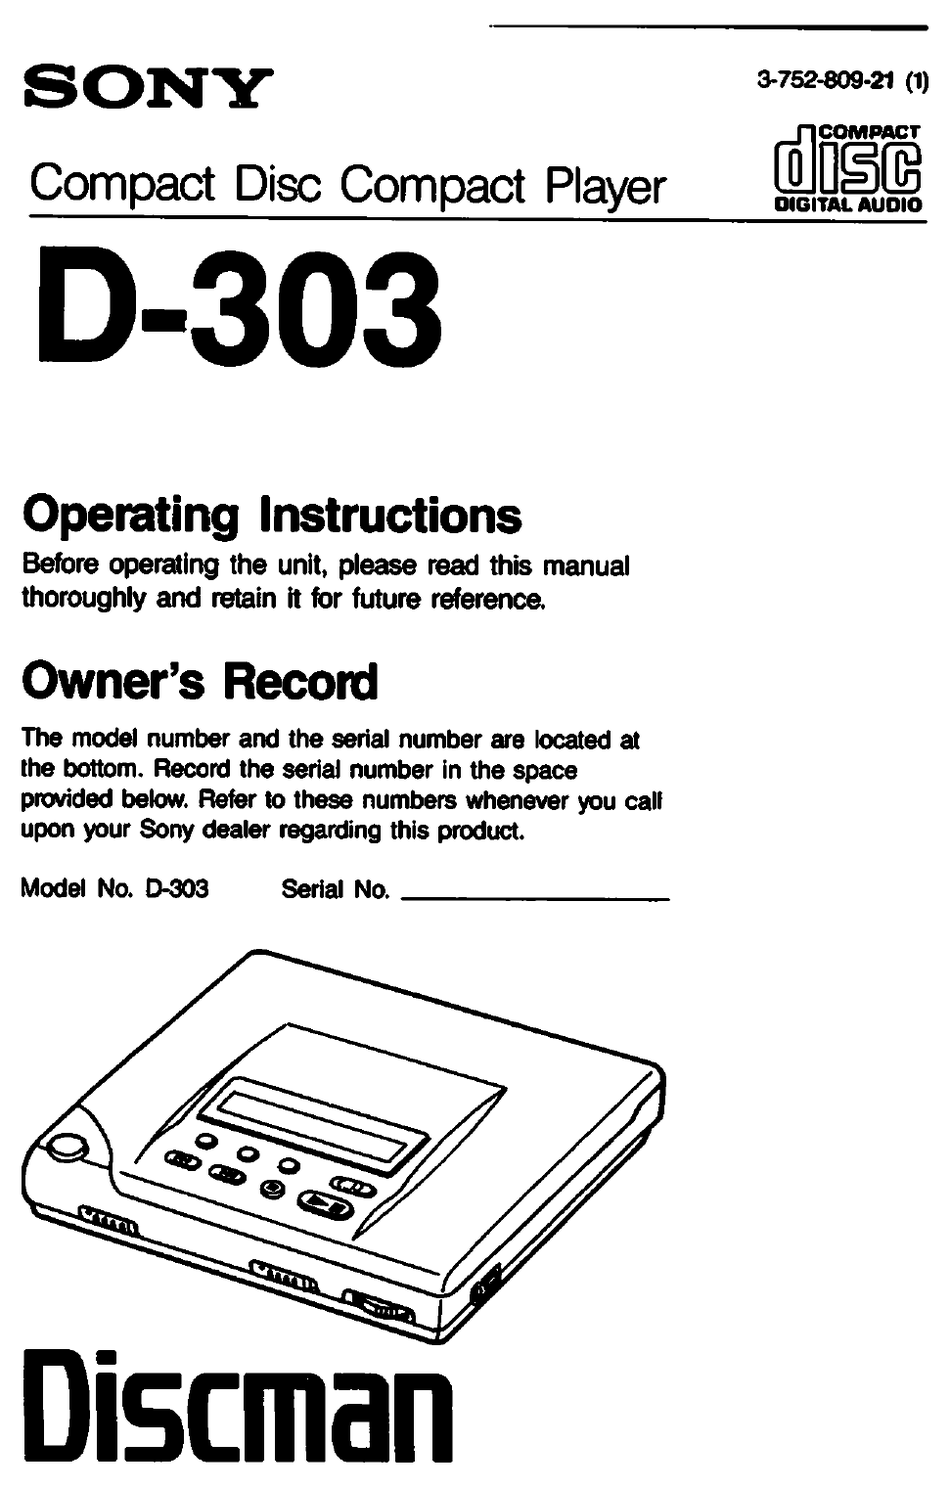 SONY D-303 OPERATING INSTRUCTIONS MANUAL Pdf Download